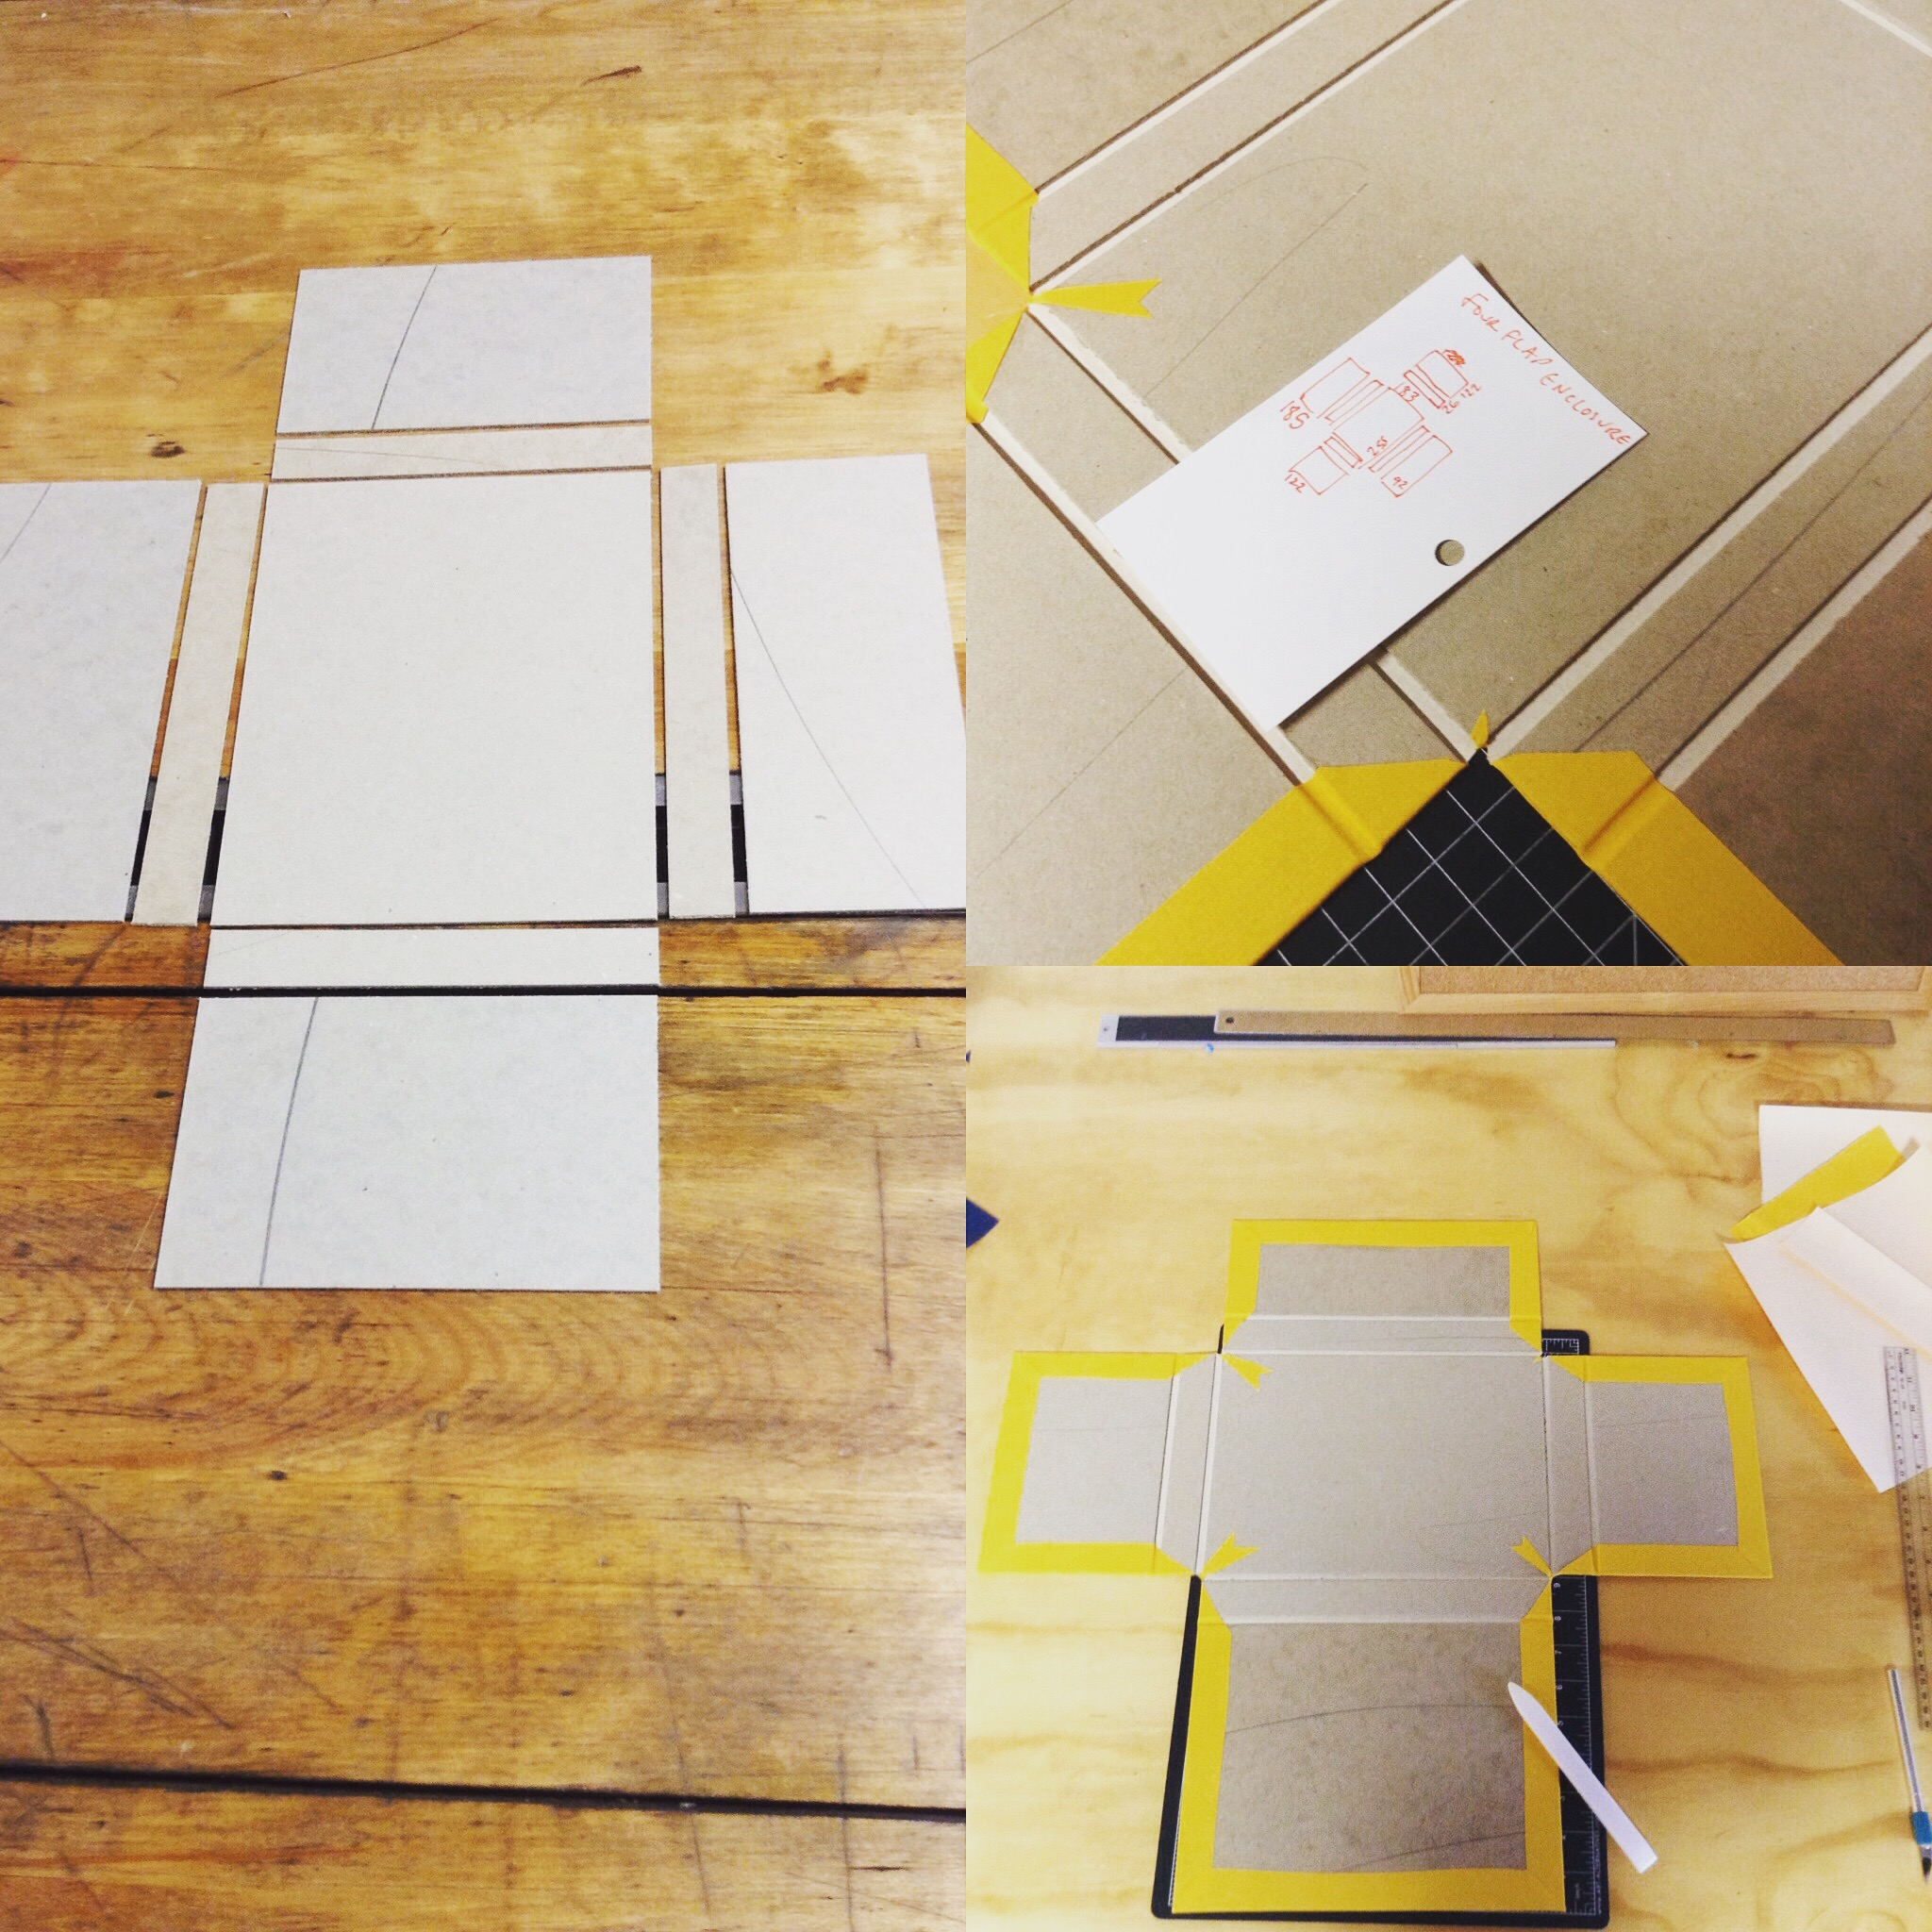 Different images showing a few try outs of making the four flap enclosure.